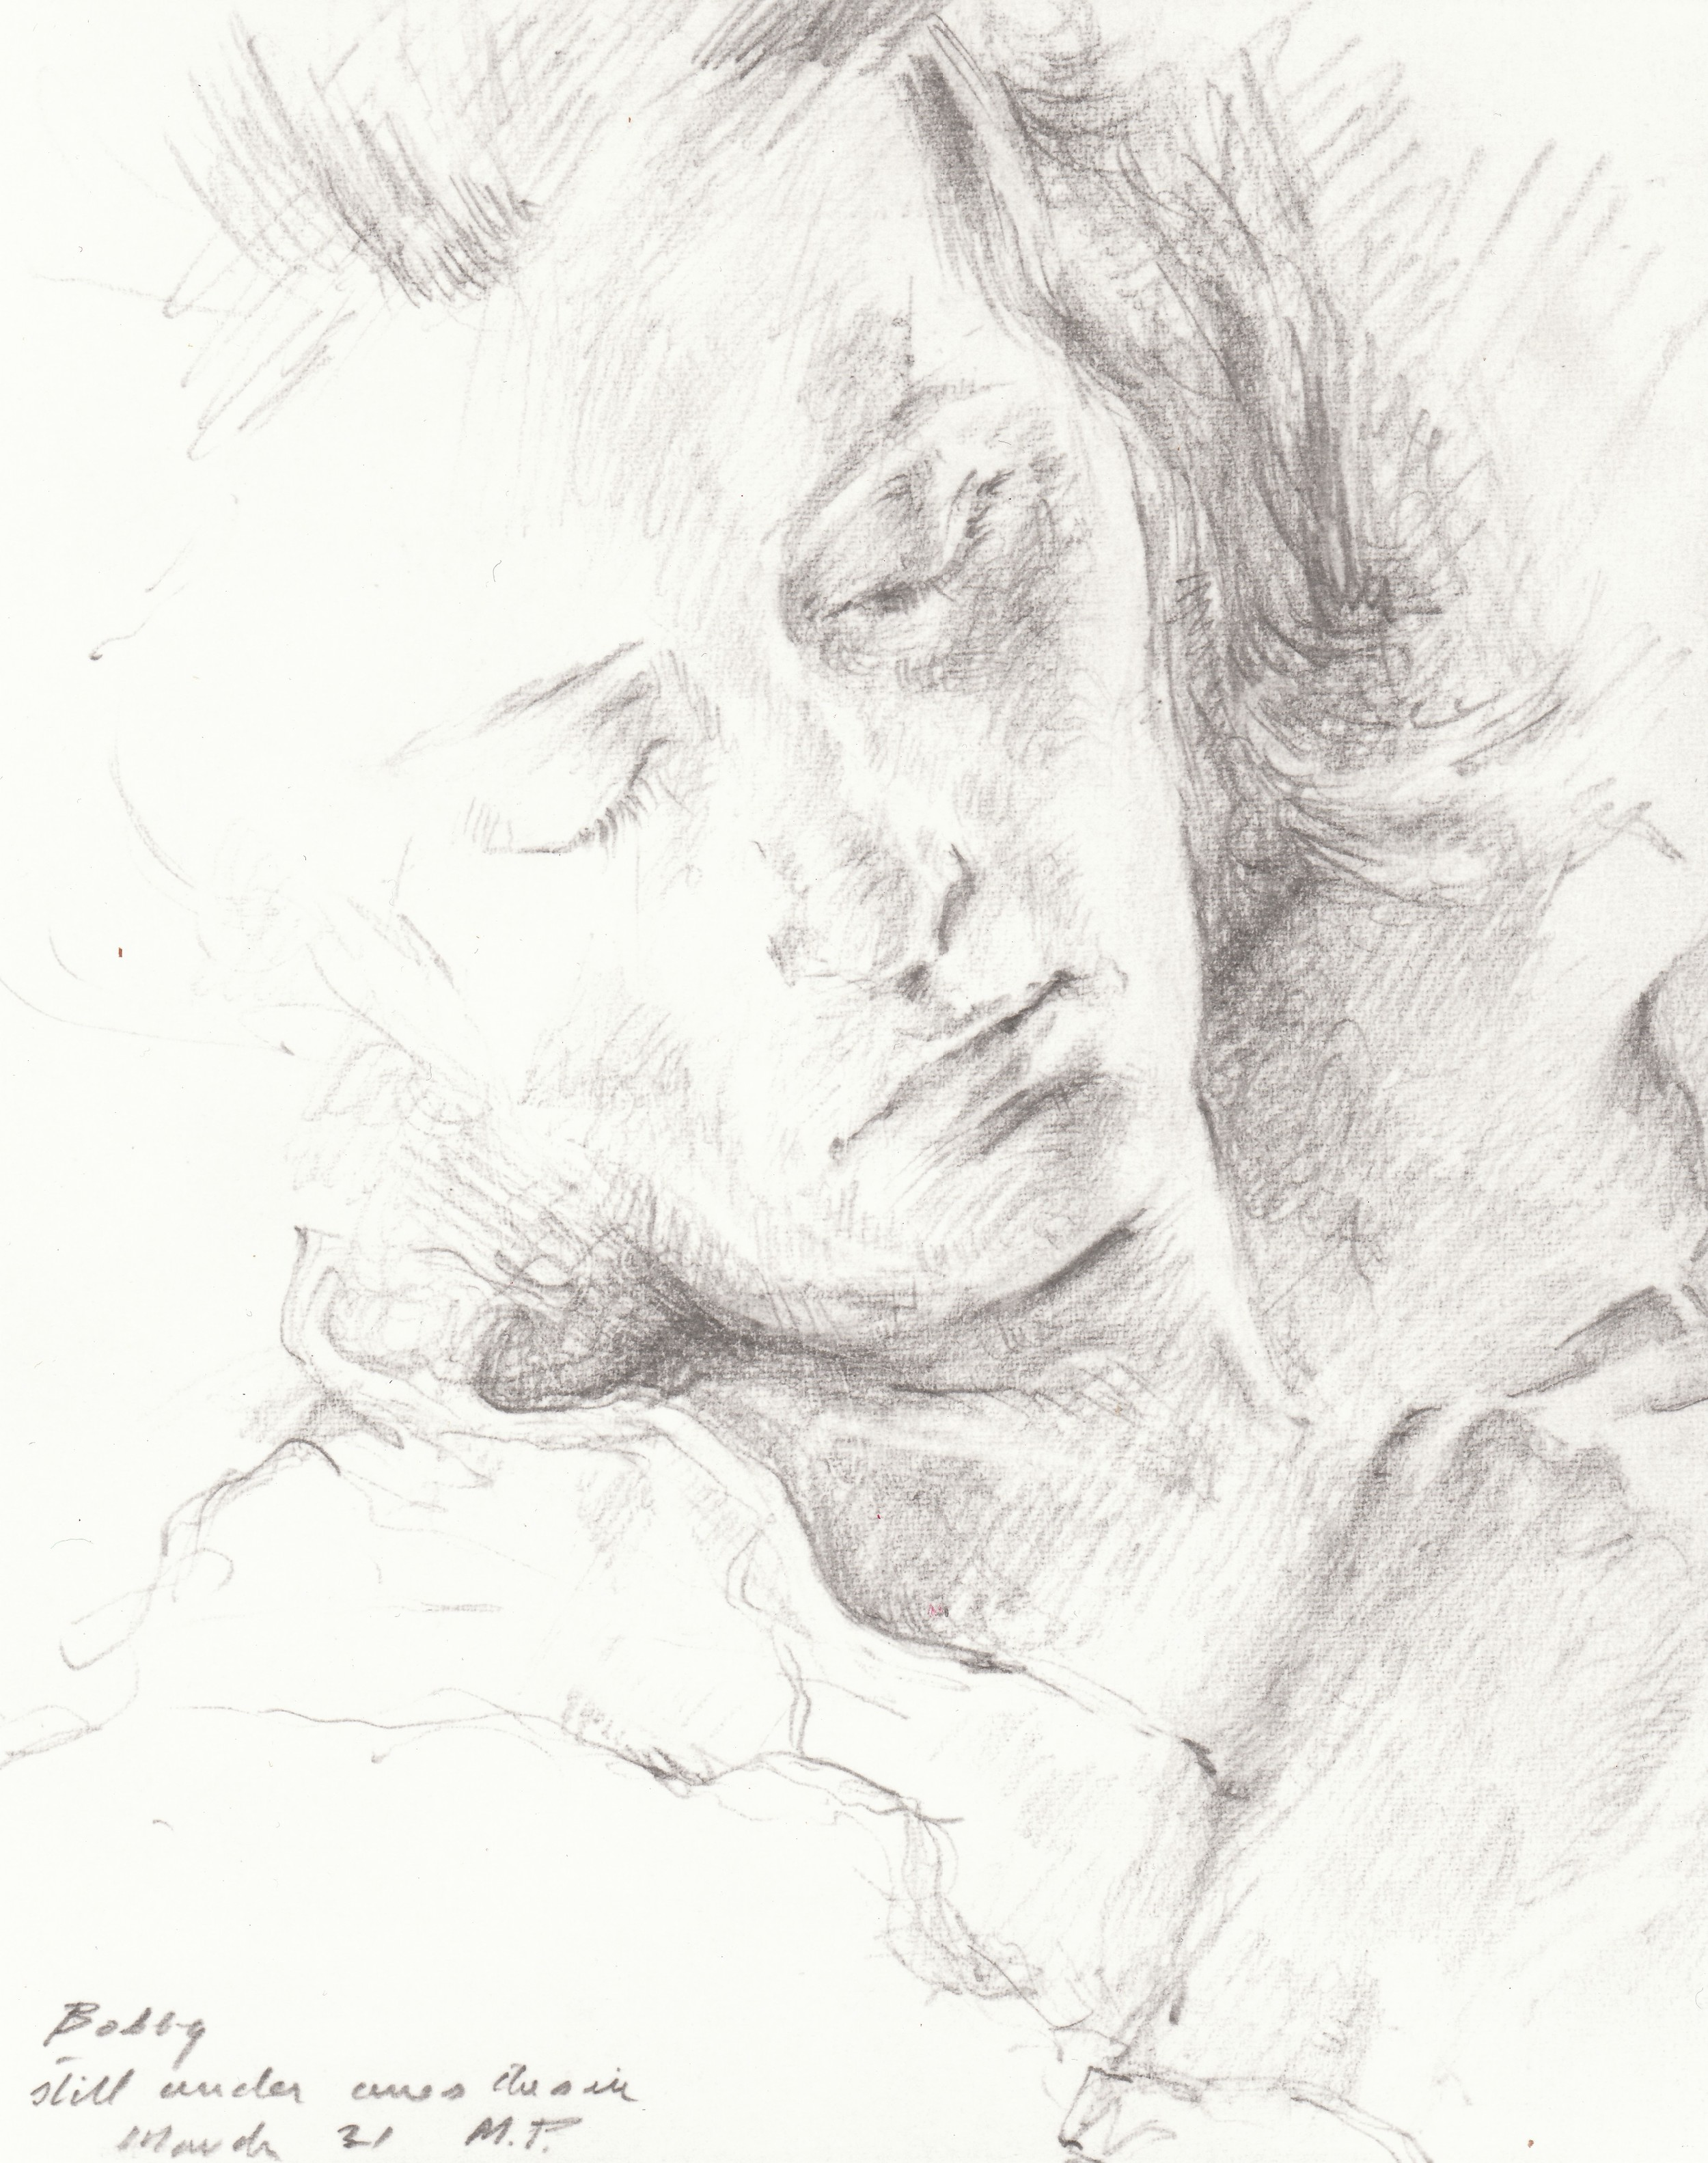 Bobby Still Under Anesthesia.    1972, pencil on paper. 6.5 x 5.3 inches. Private Collection.